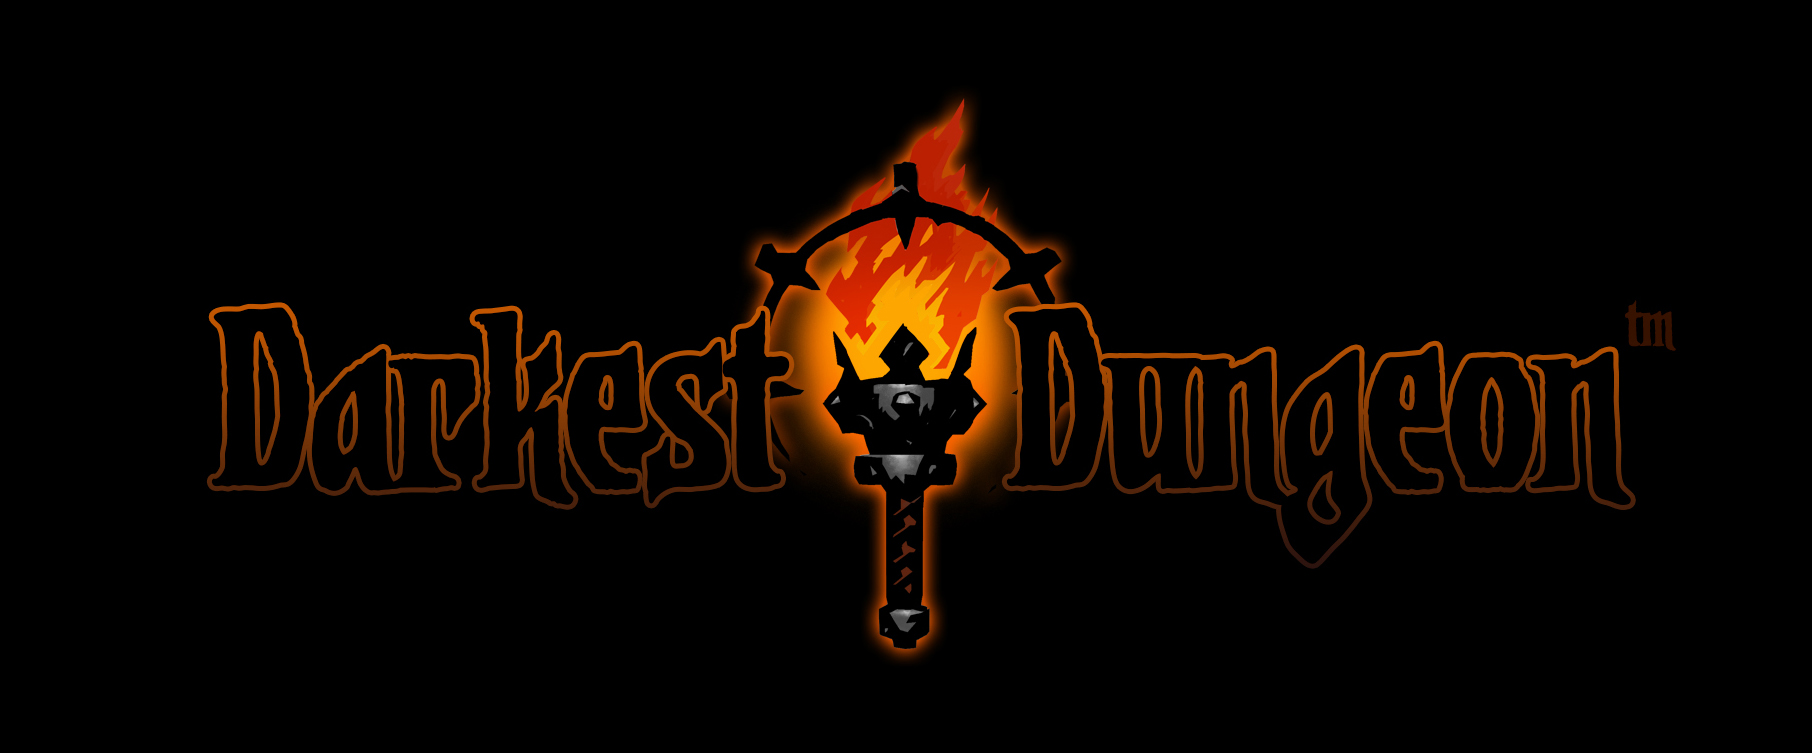 Darkest-Dungeon-banner.jpg